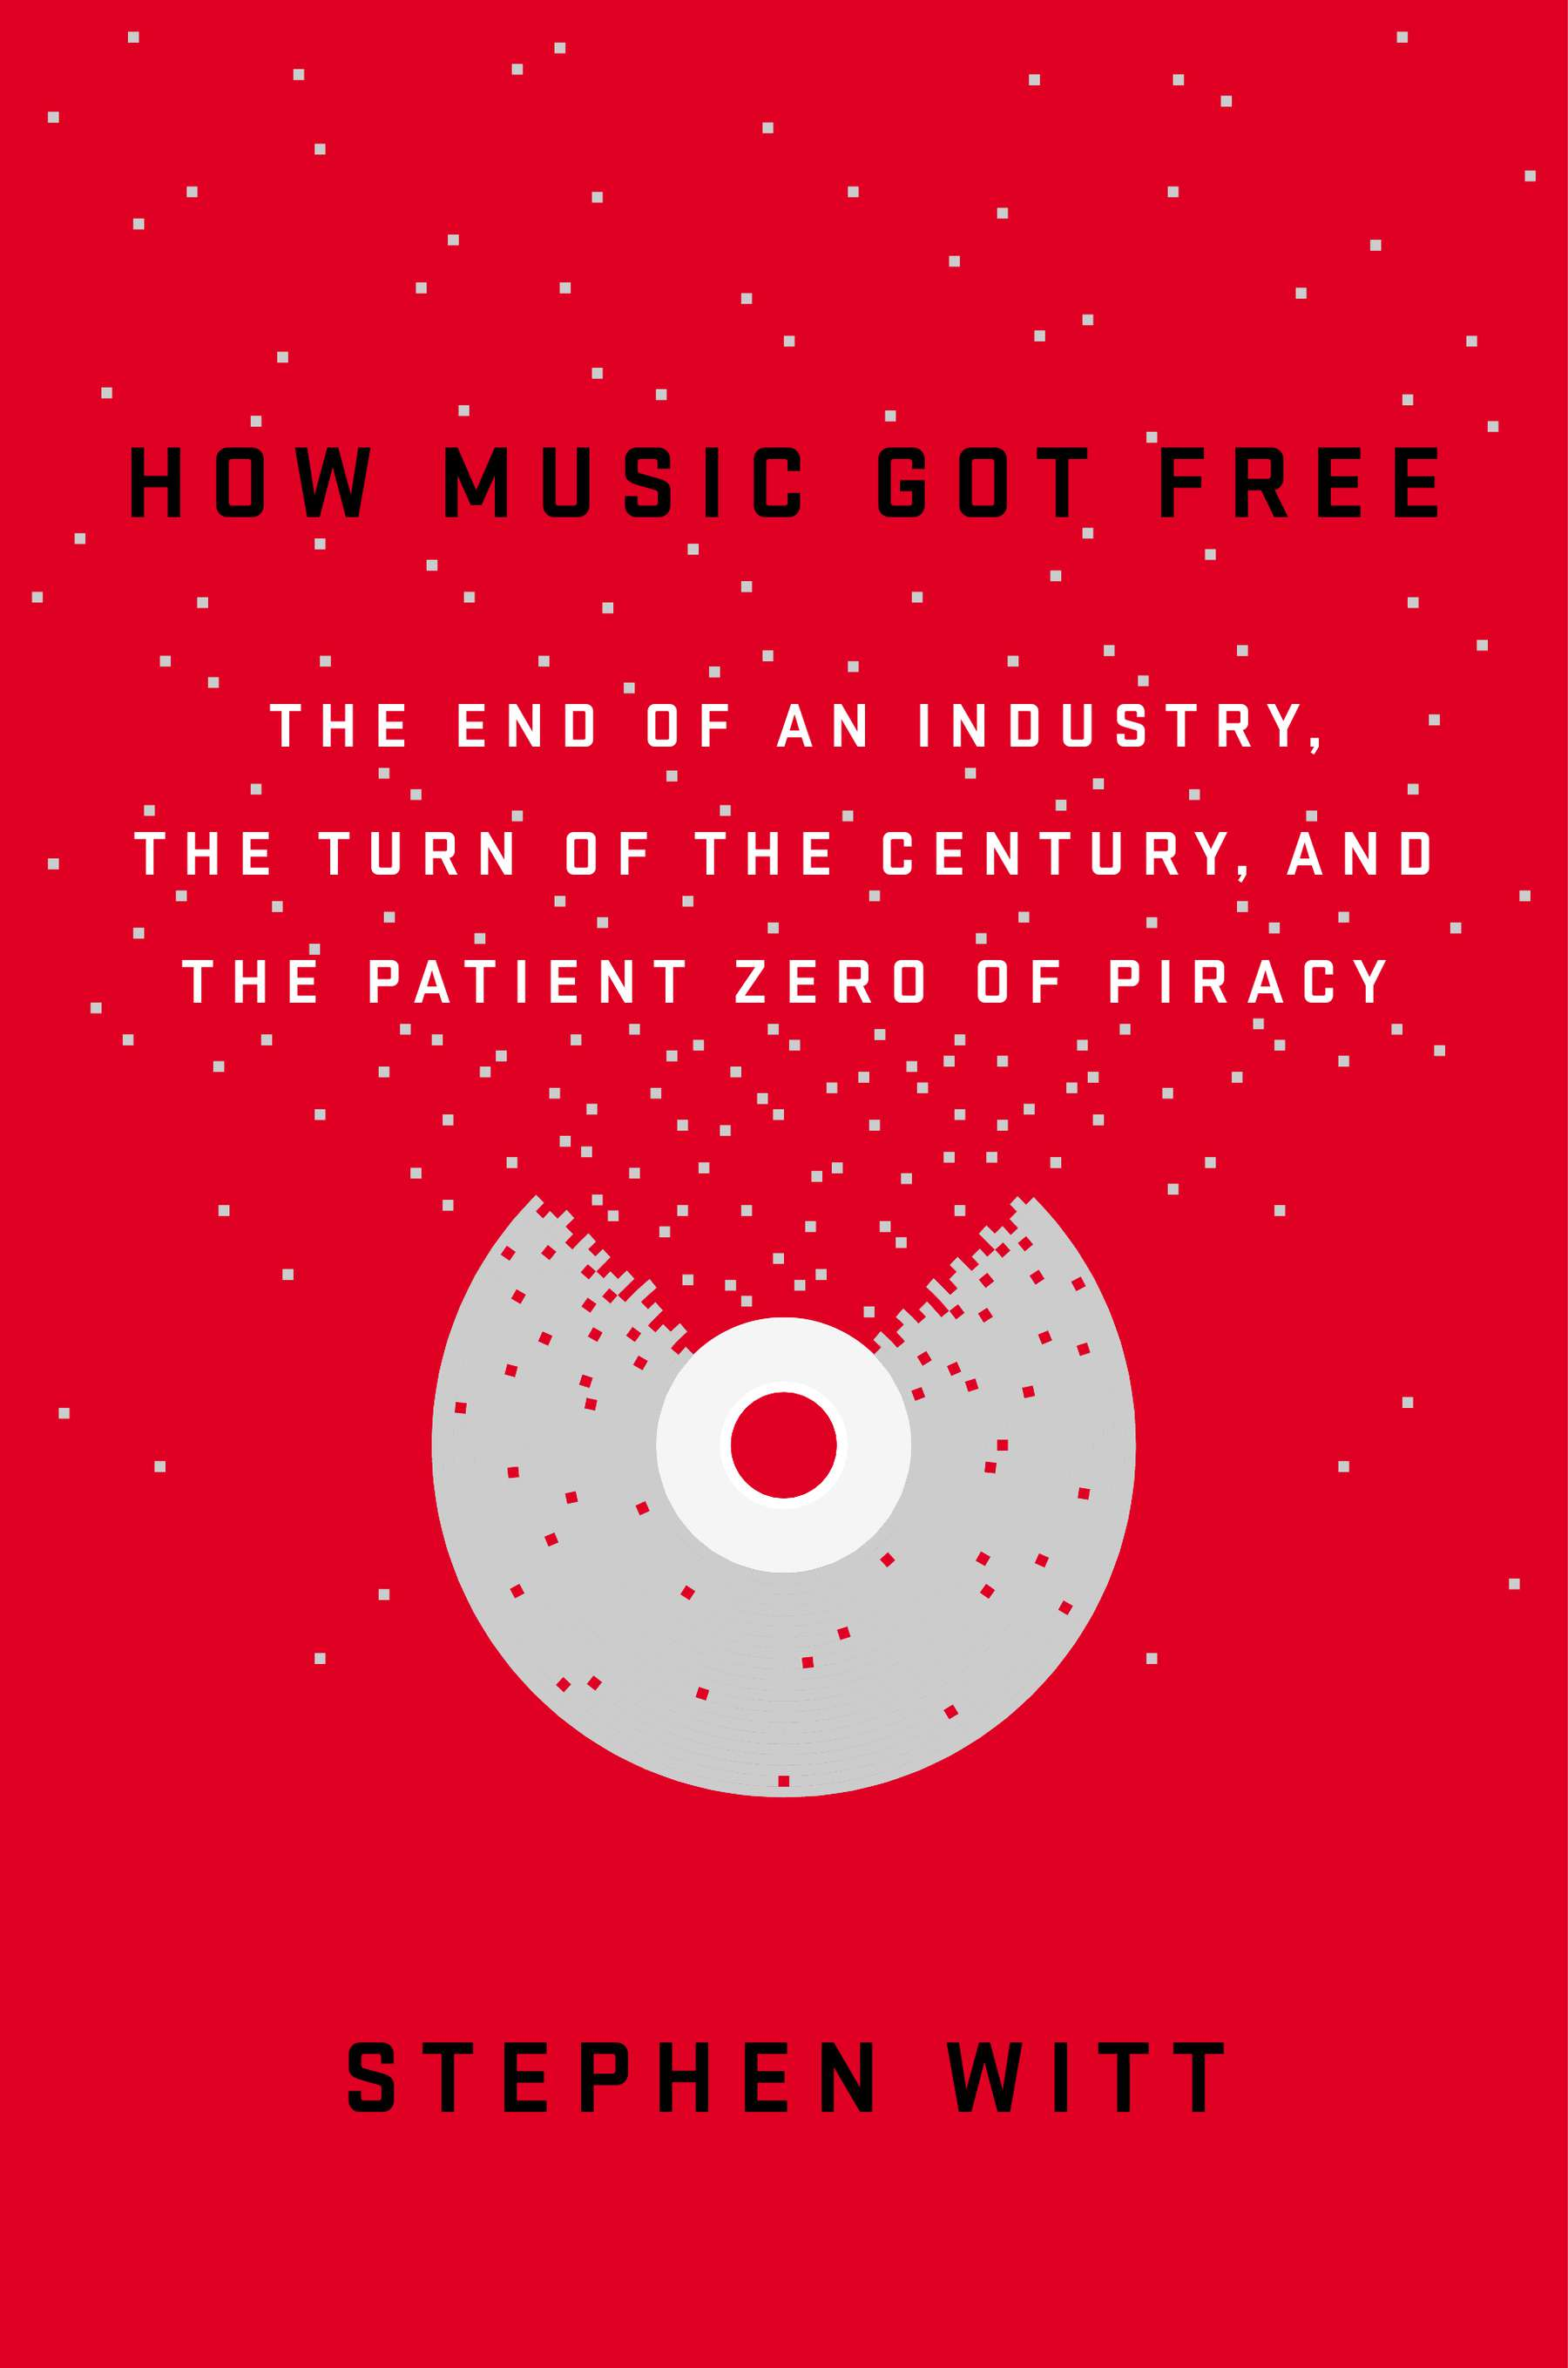 How Music Got Free cover photo